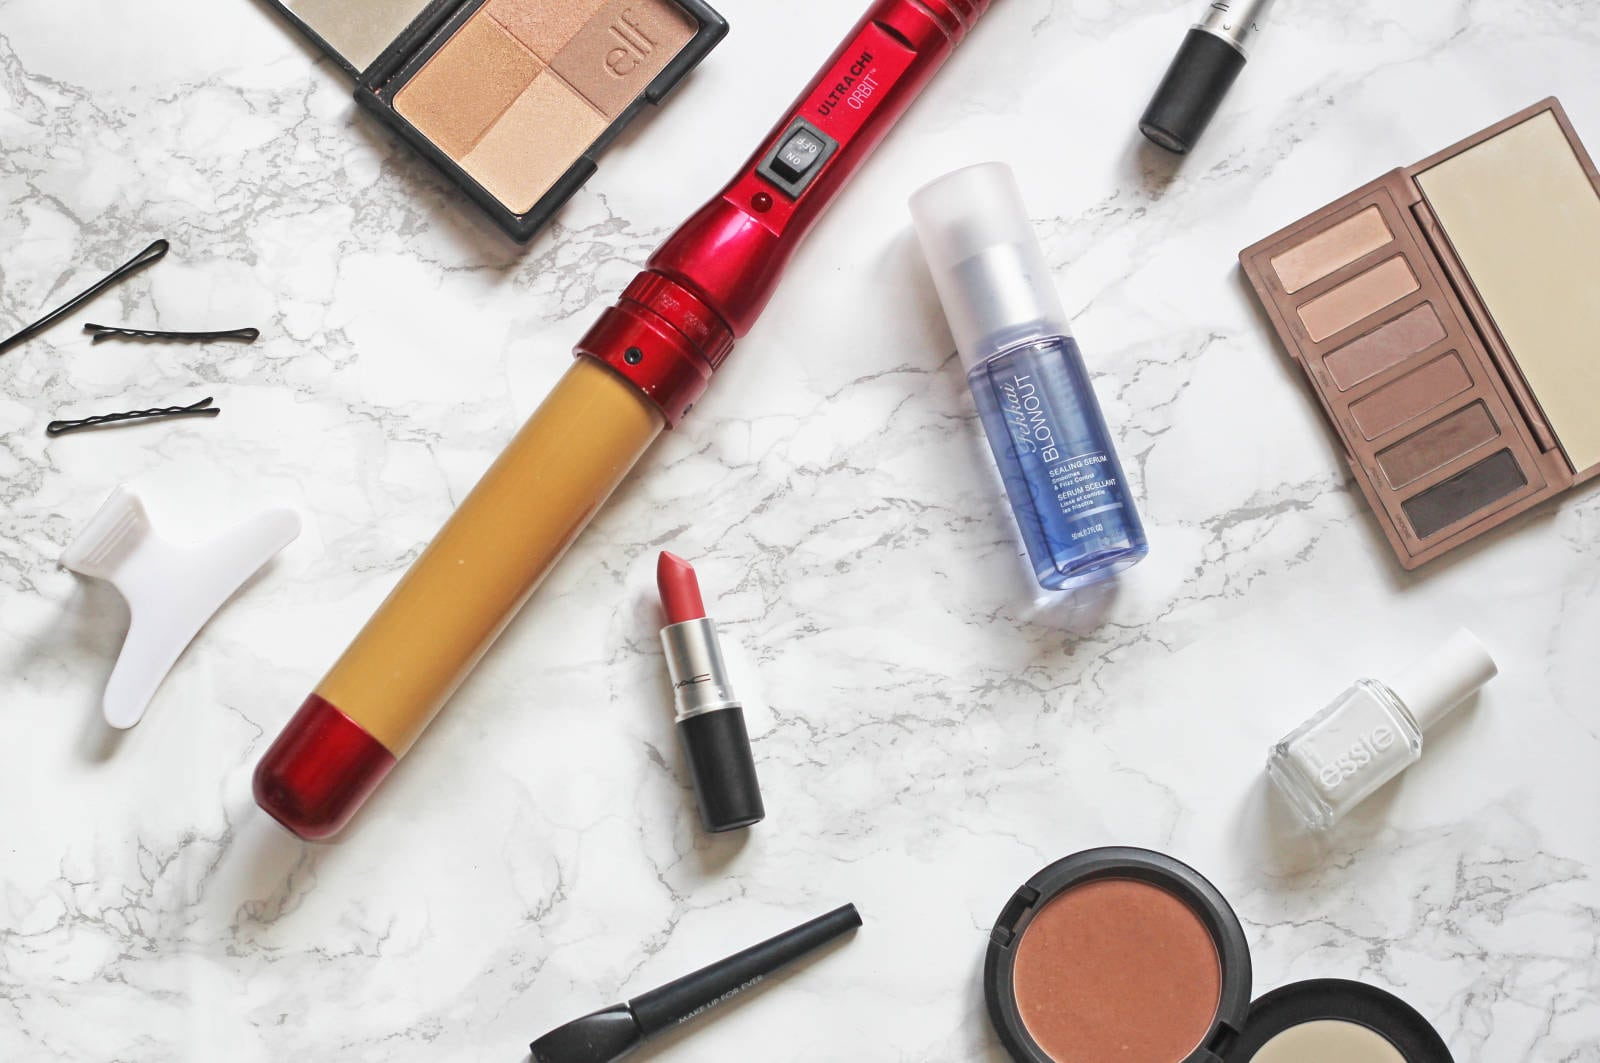 whats-in-my-overnight-bag | overnight bag packing | packing for a trip | Mash elle lifestyle blogger | razor | makeup | jewelry